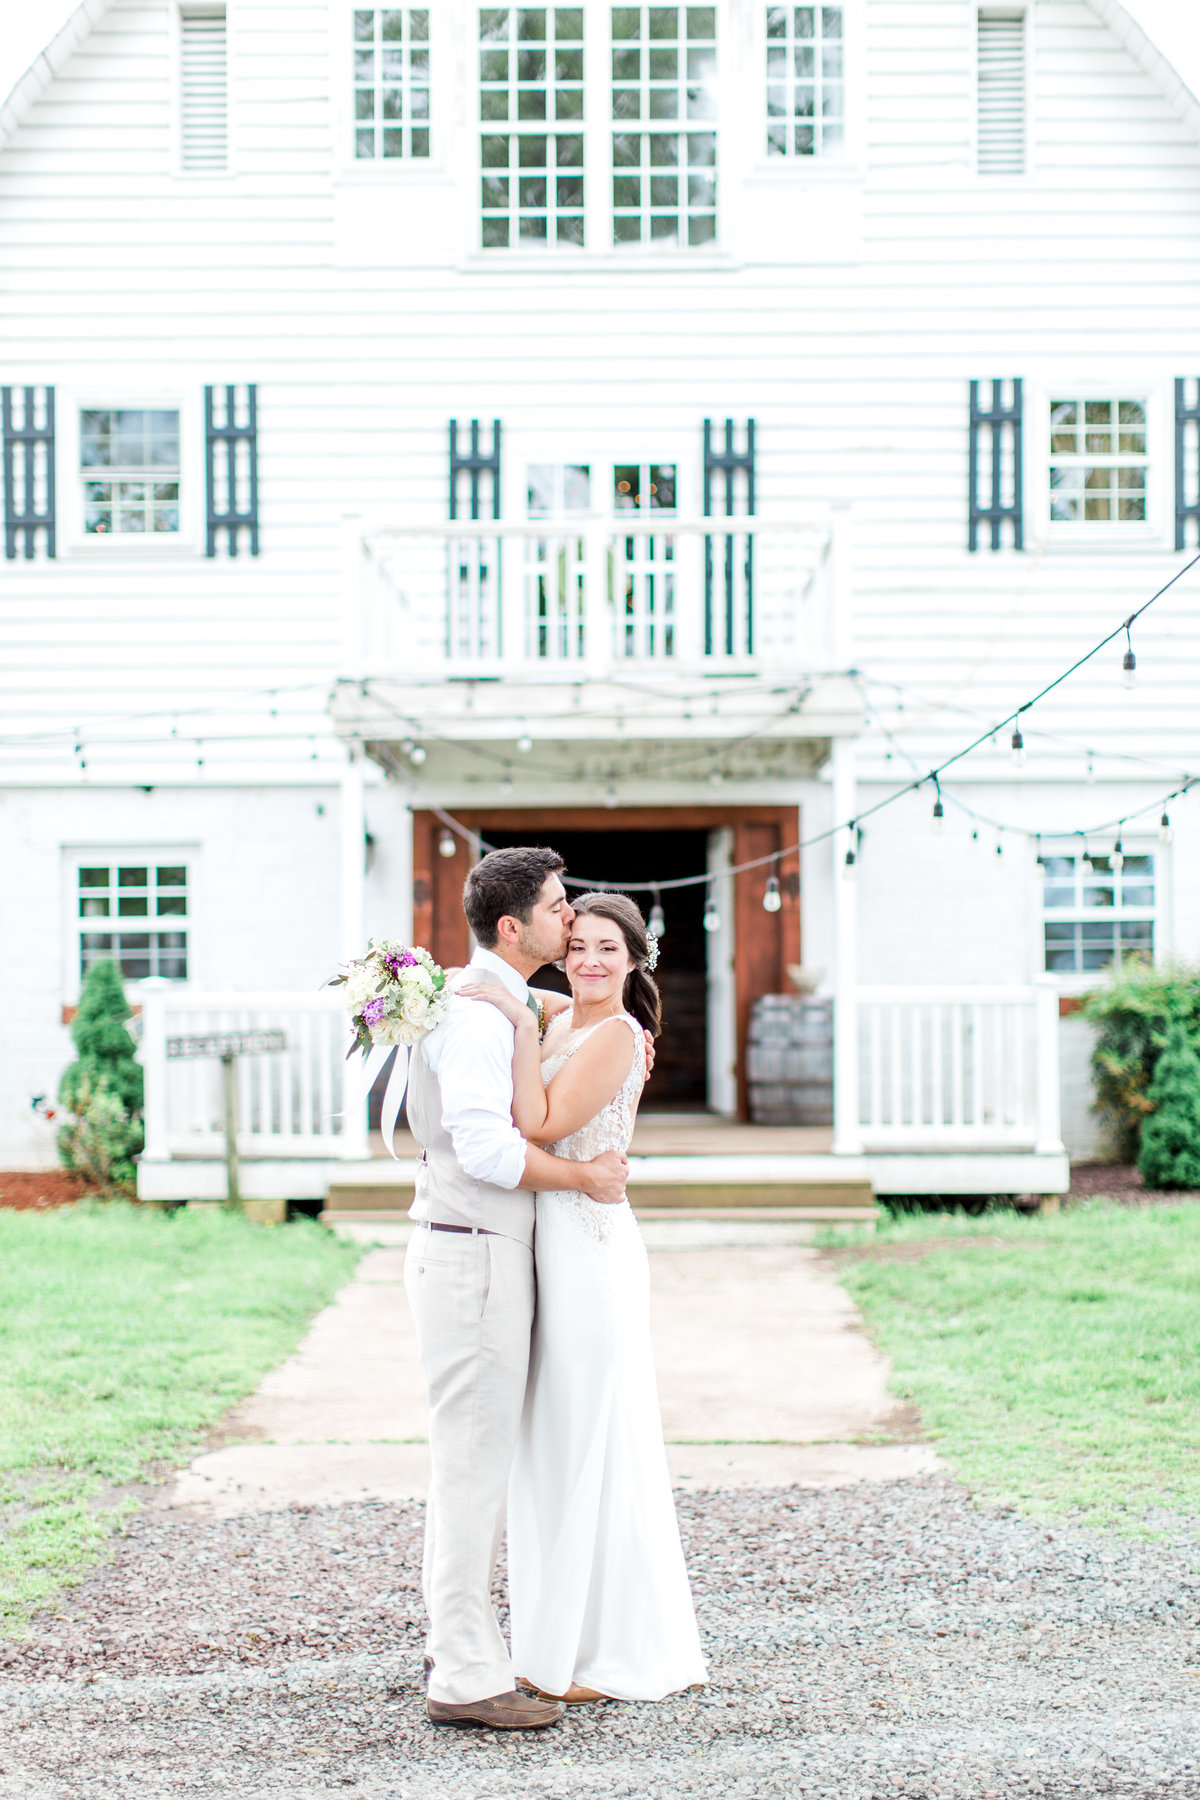 brandy hill farm wedding